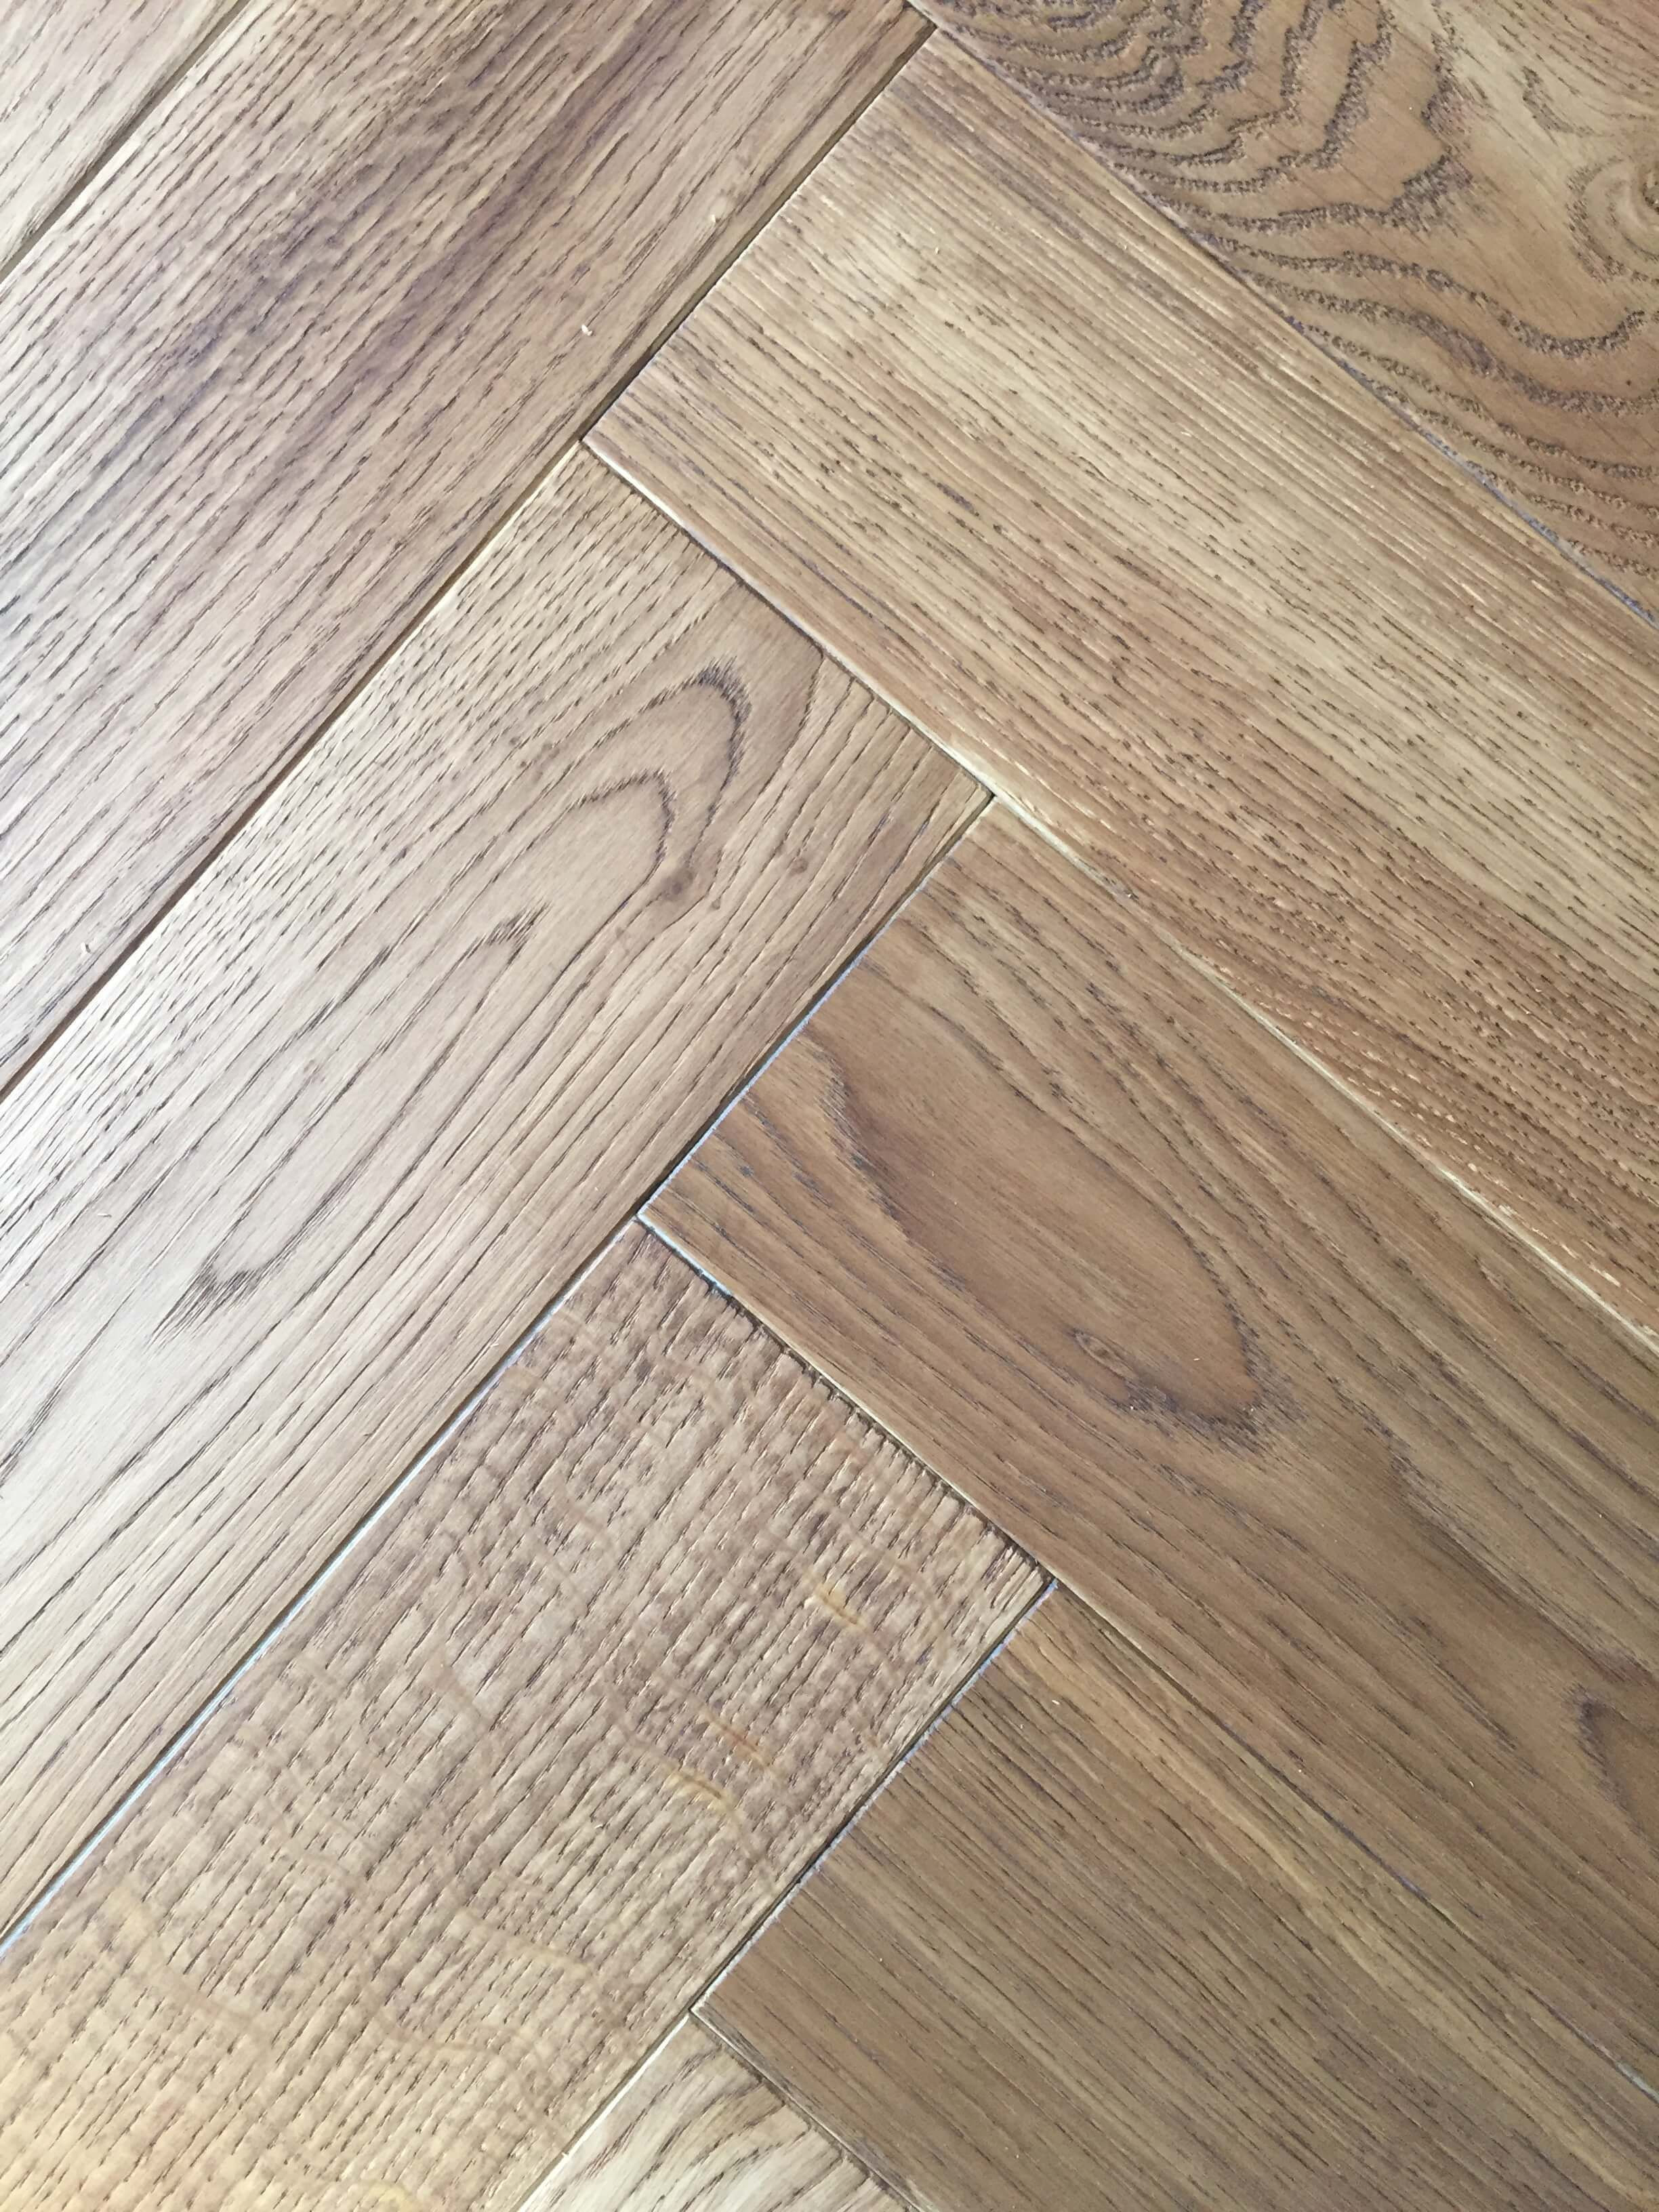 hardwood flooring versus laminate flooring of roll out laminate wood flooring bamboo vs hardwood flooring new pertaining to roll out laminate wood flooring bamboo vs hardwood flooring new hotel od barcelona projekt parklex